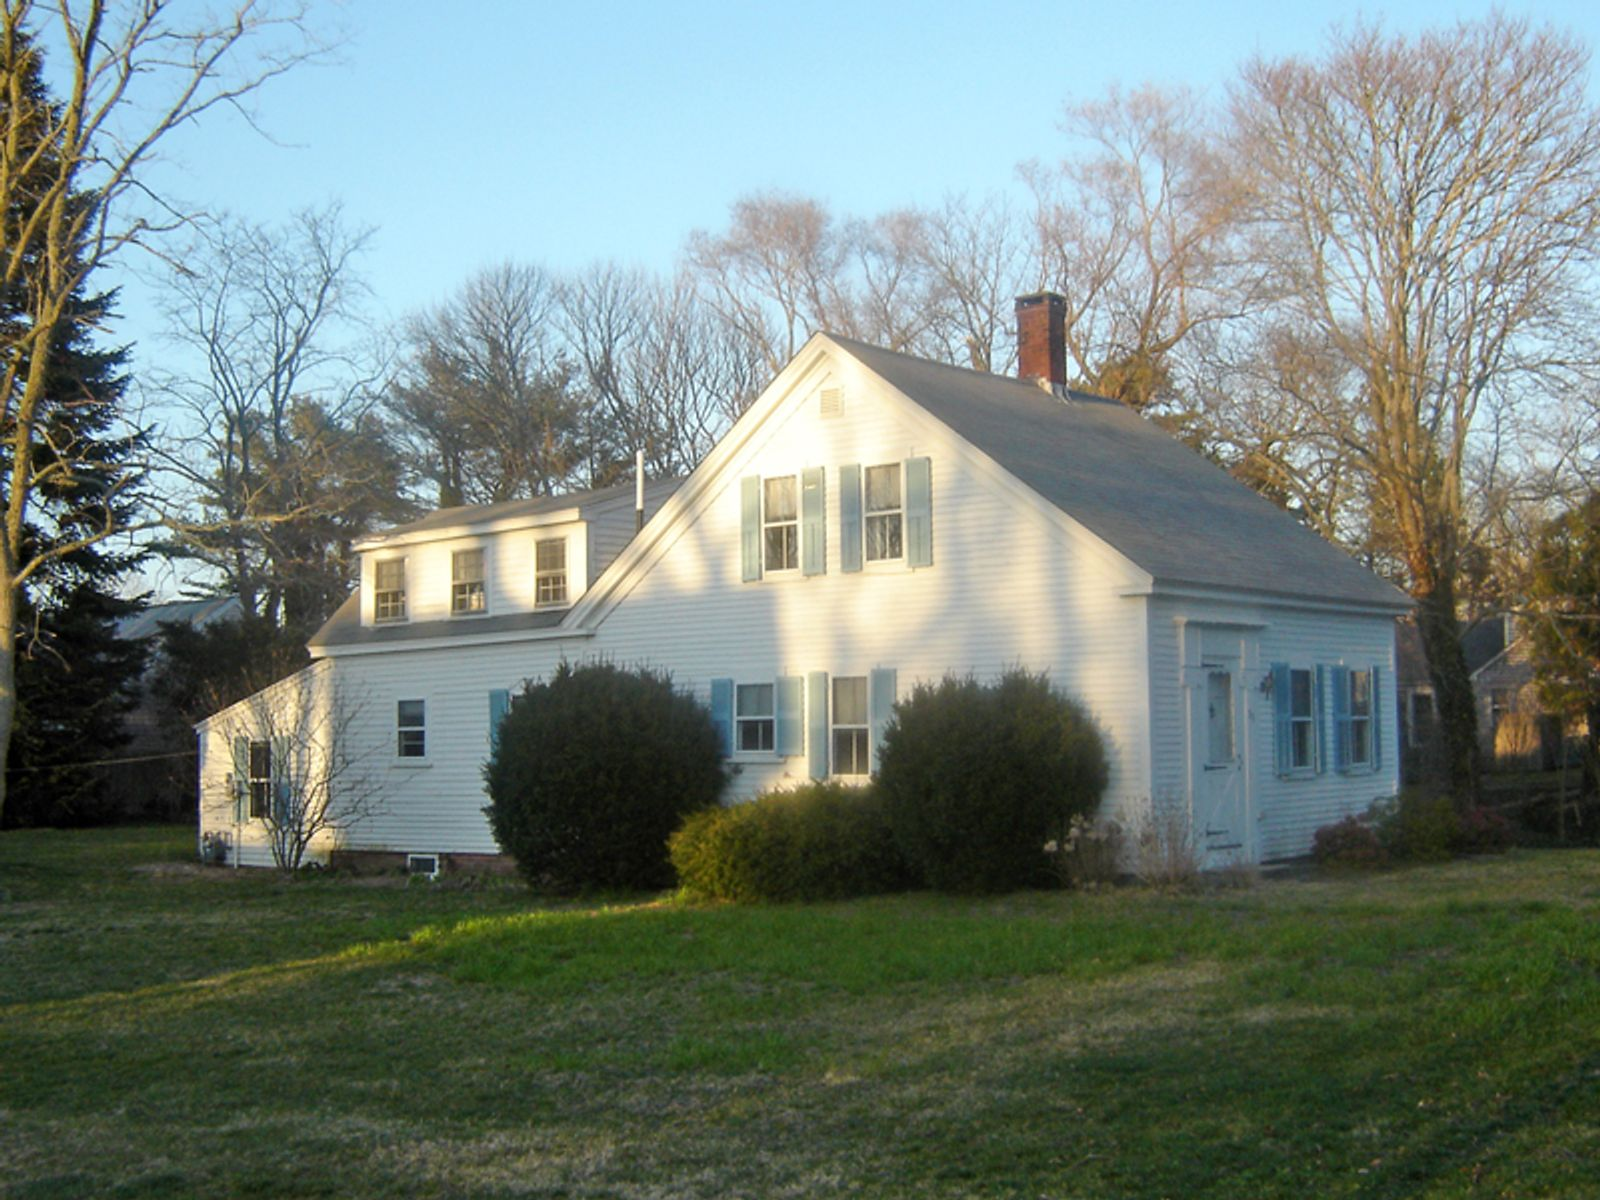 In-Town Gem, Harwich MA Single Family Home - Cape Cod Real Estate